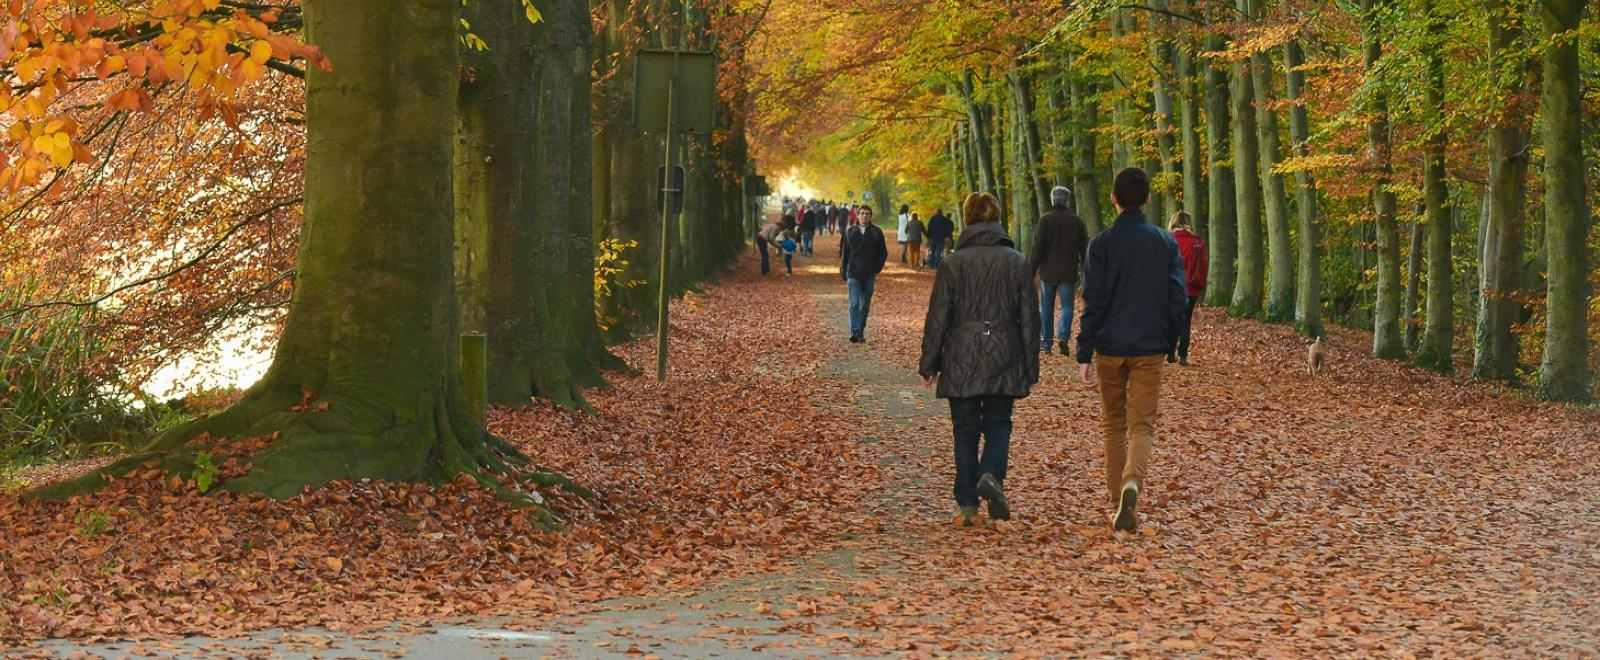 Walking in Tervuren